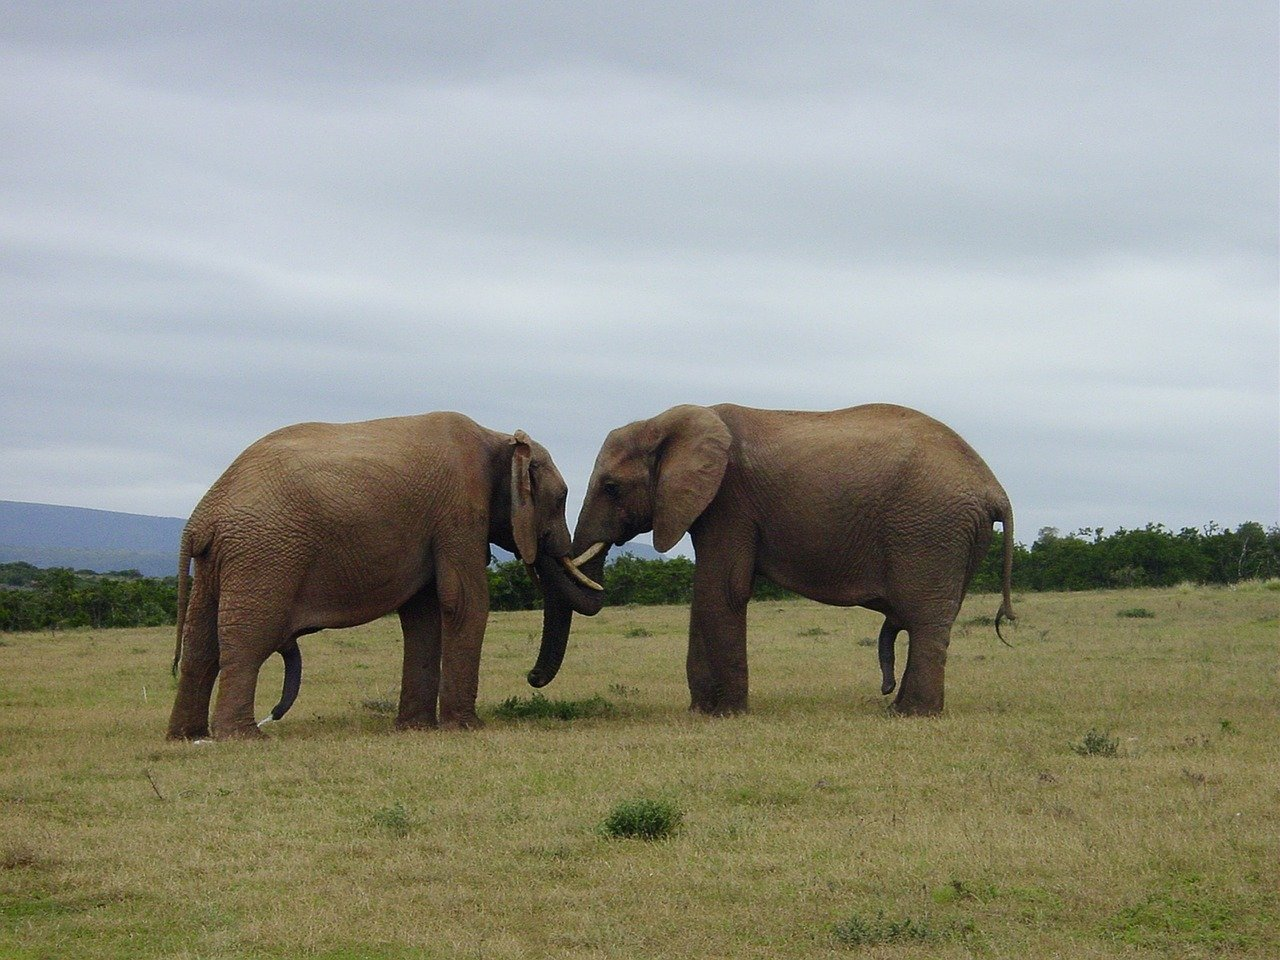 Elephants. Click to see more of Adorable Animal Pictures for Valentine's Day | Animals Zone